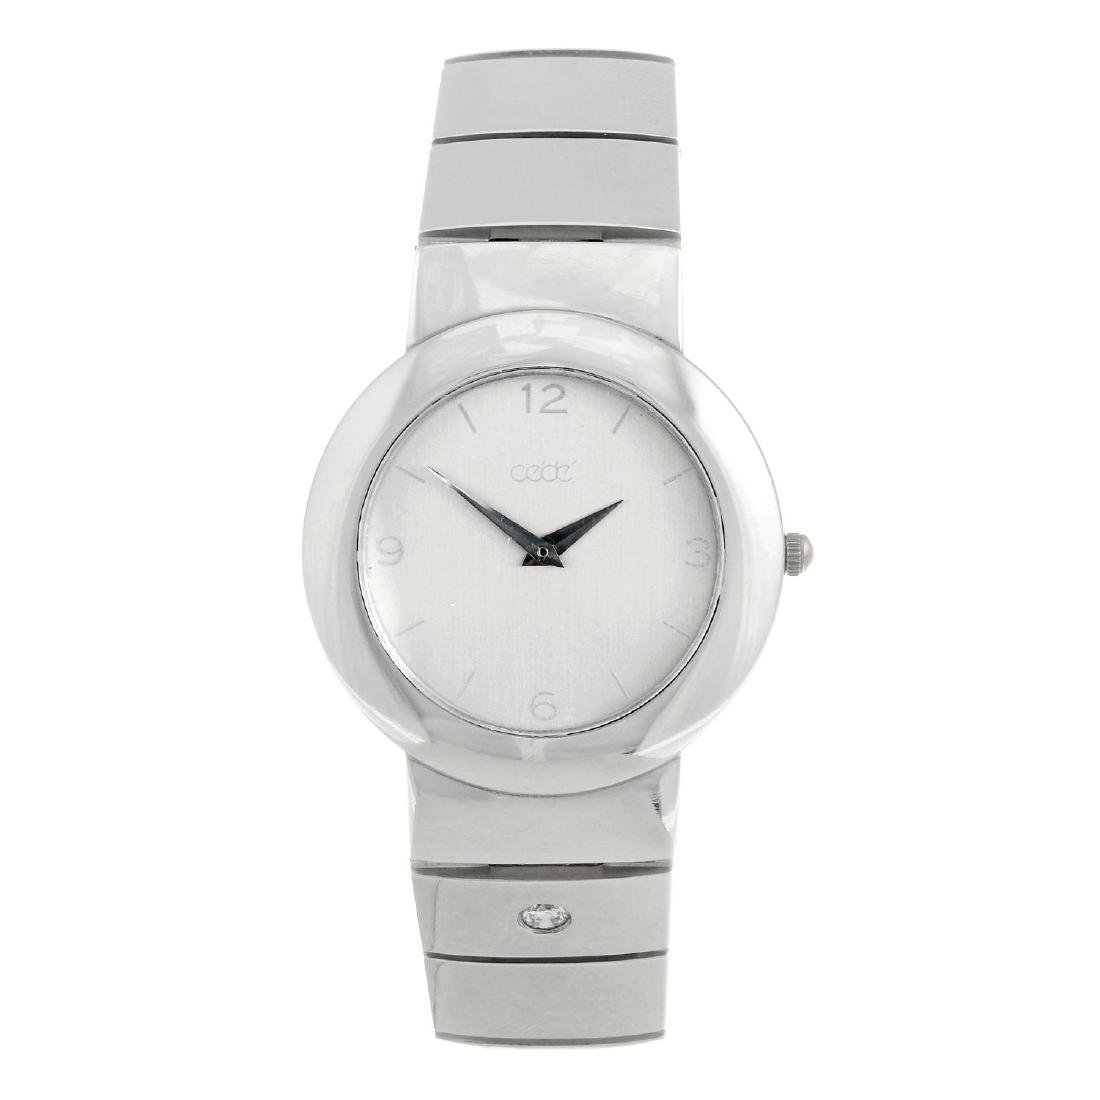 CEDE - a bracelet watch. White metal case, stamped